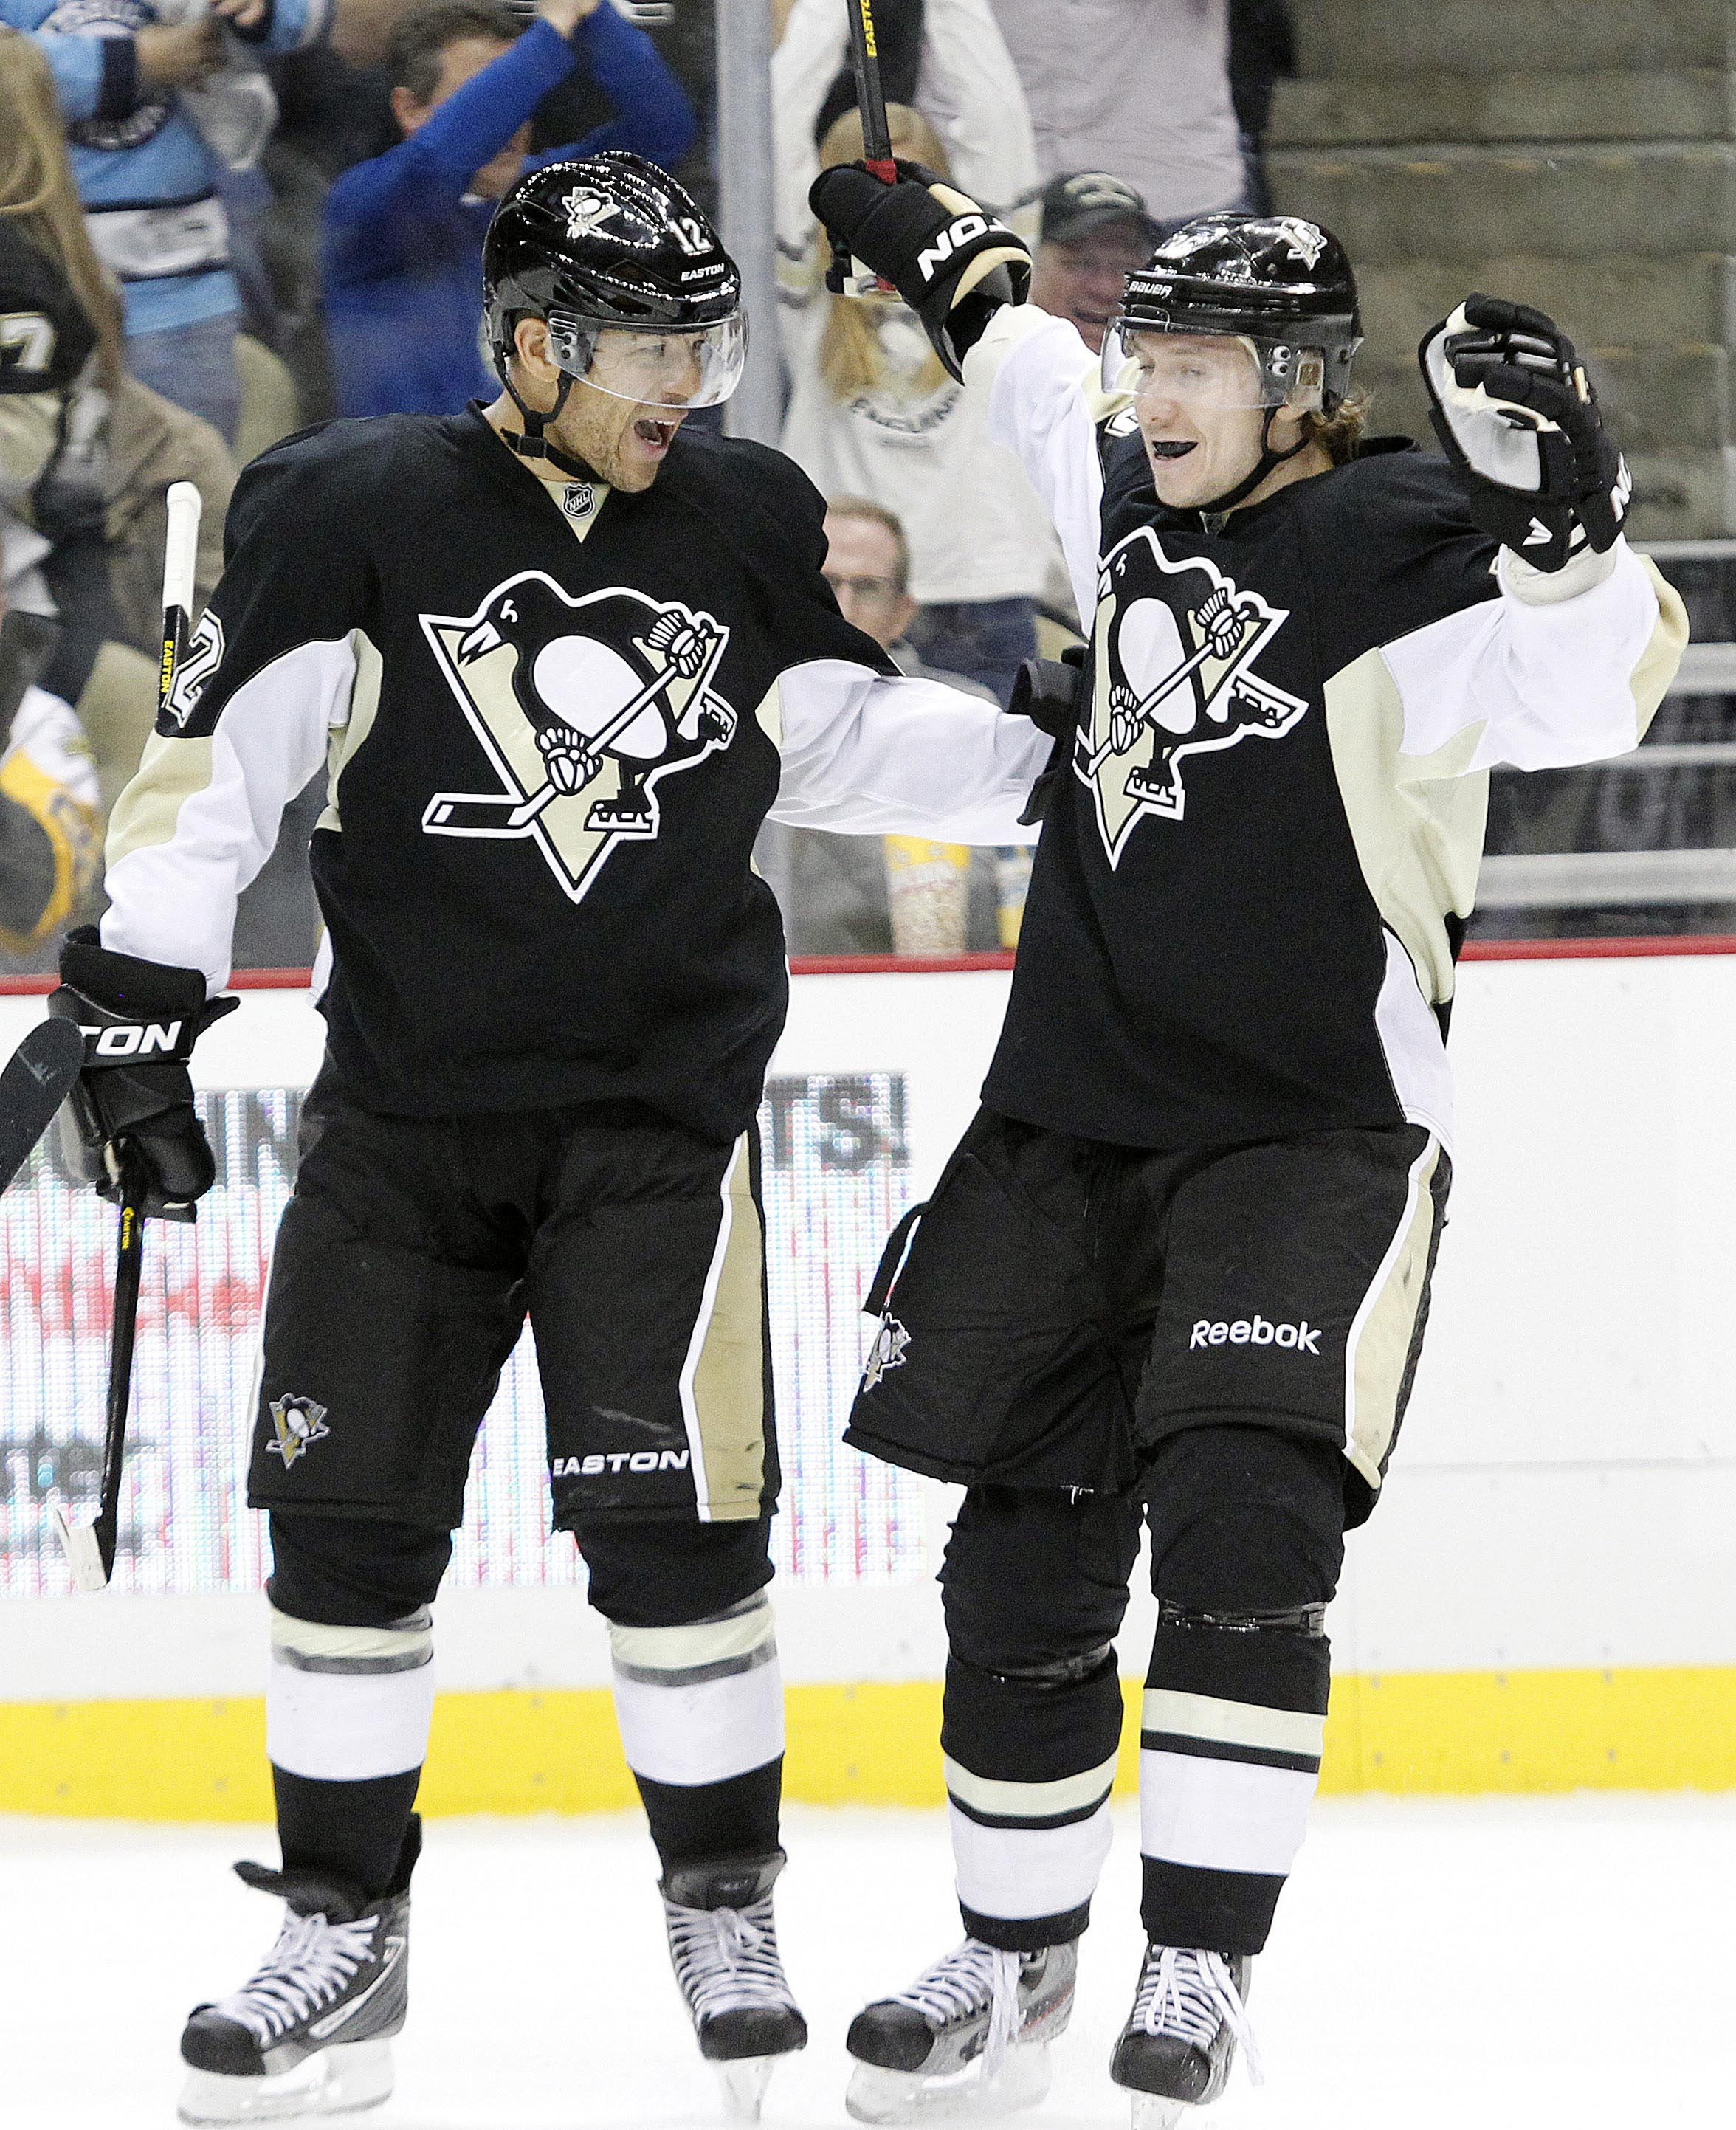 Jarome Iginla (left) and Jussi Jokinen (right). (USA TODAY Sports)